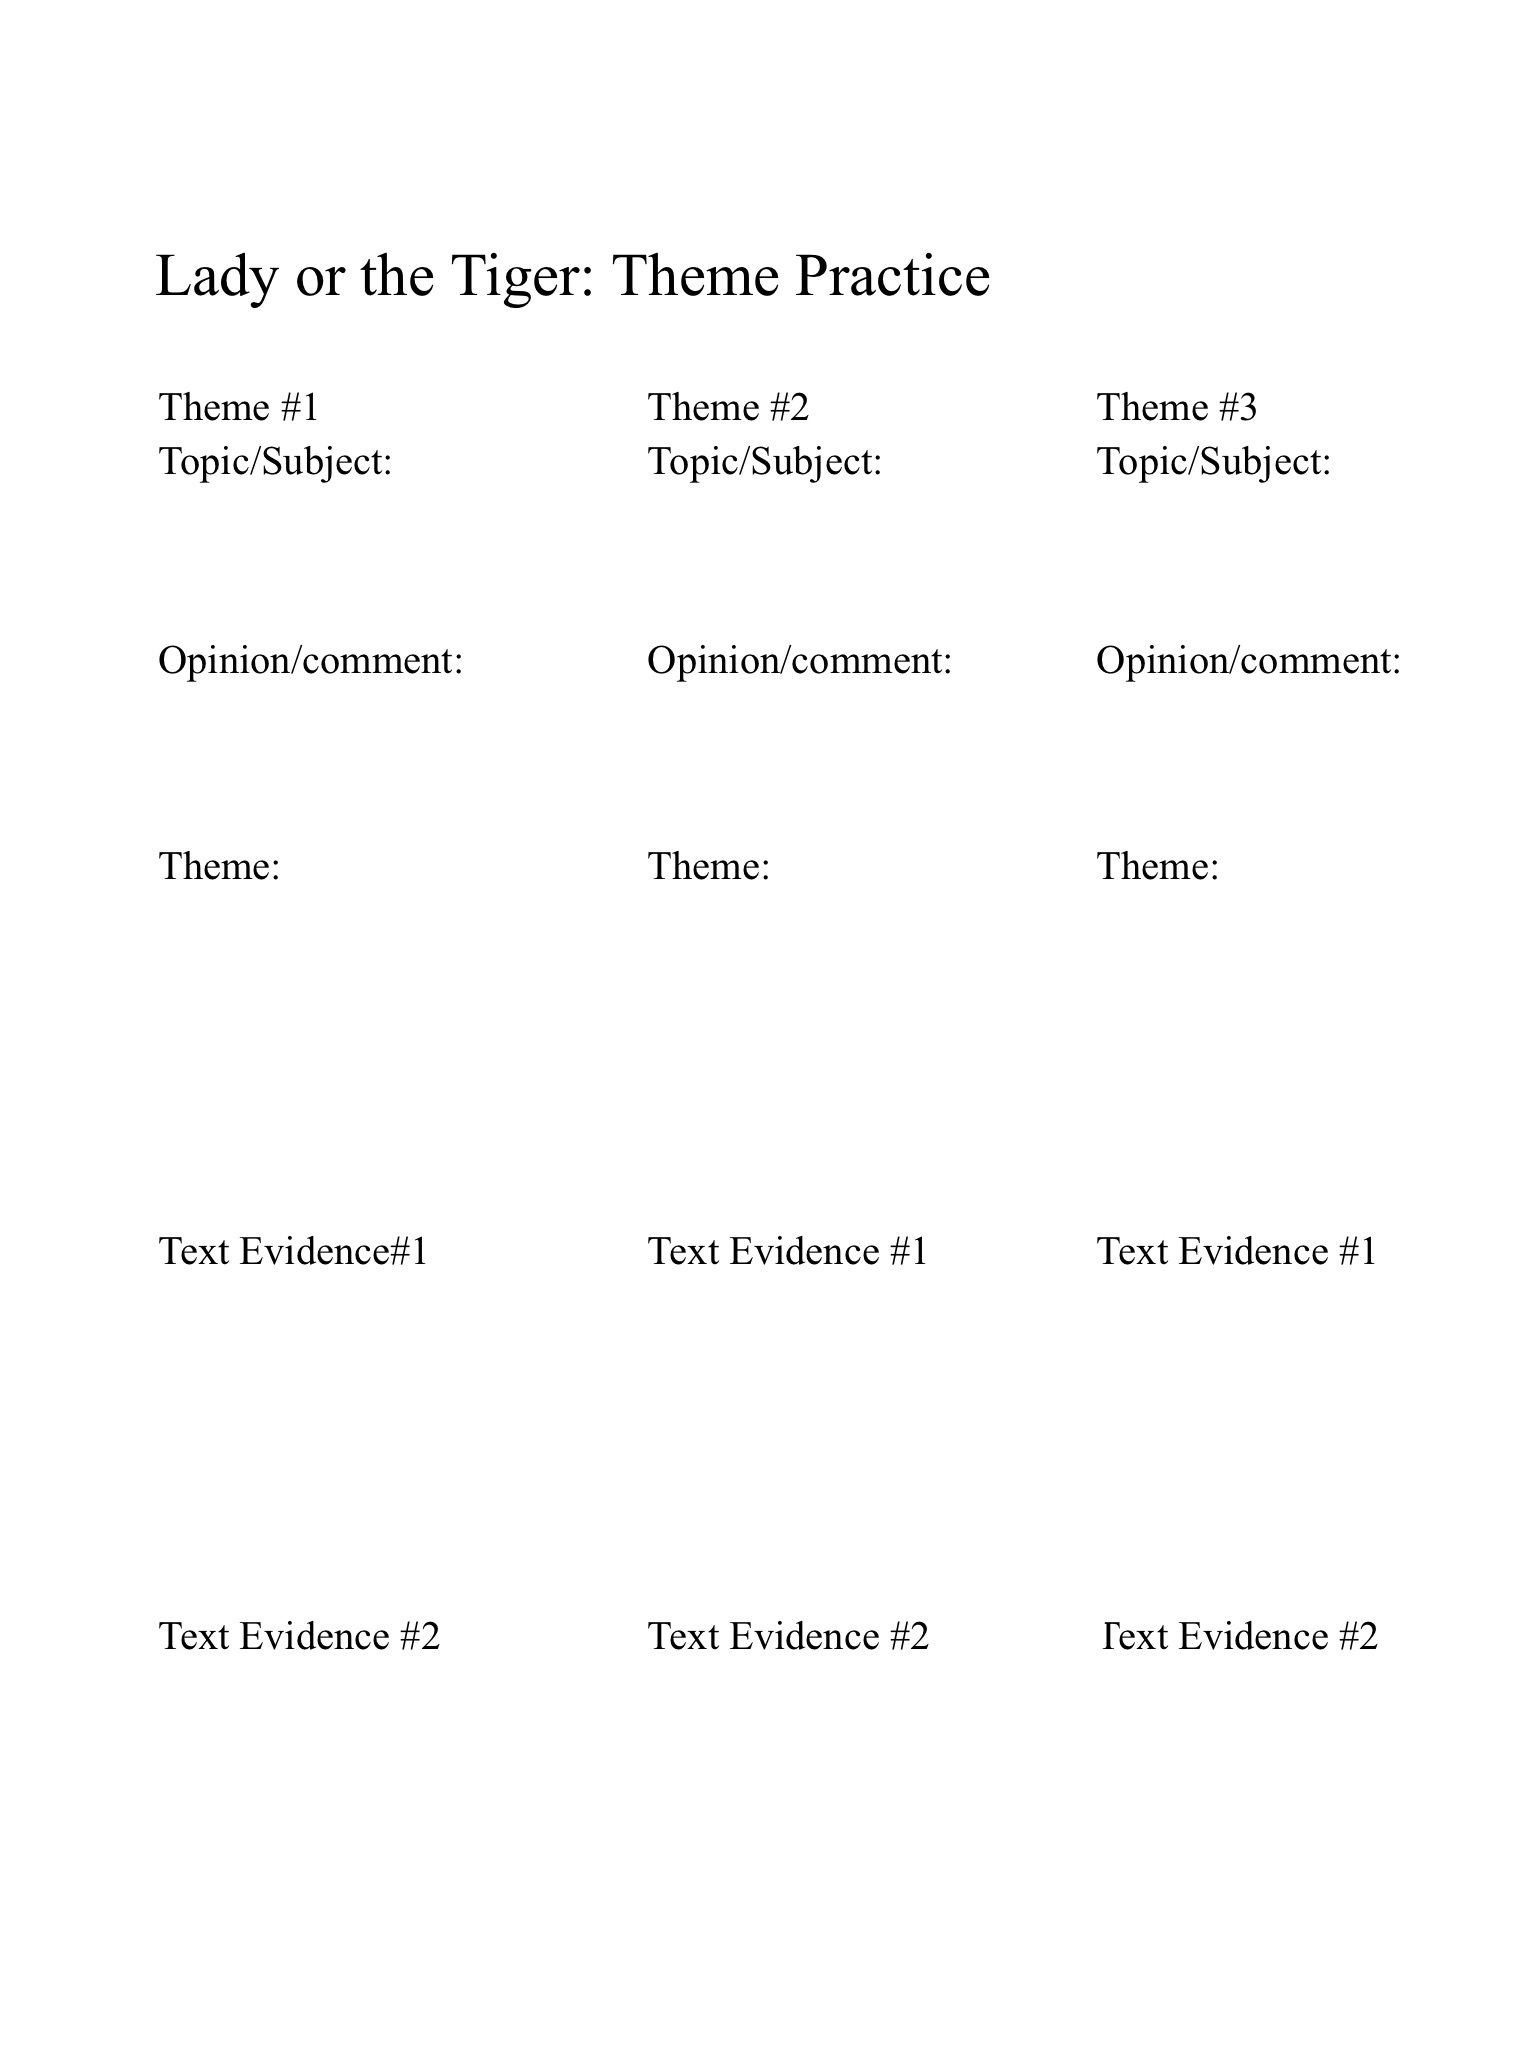 I Have Homework For The Lady Or The Tiger That Is About